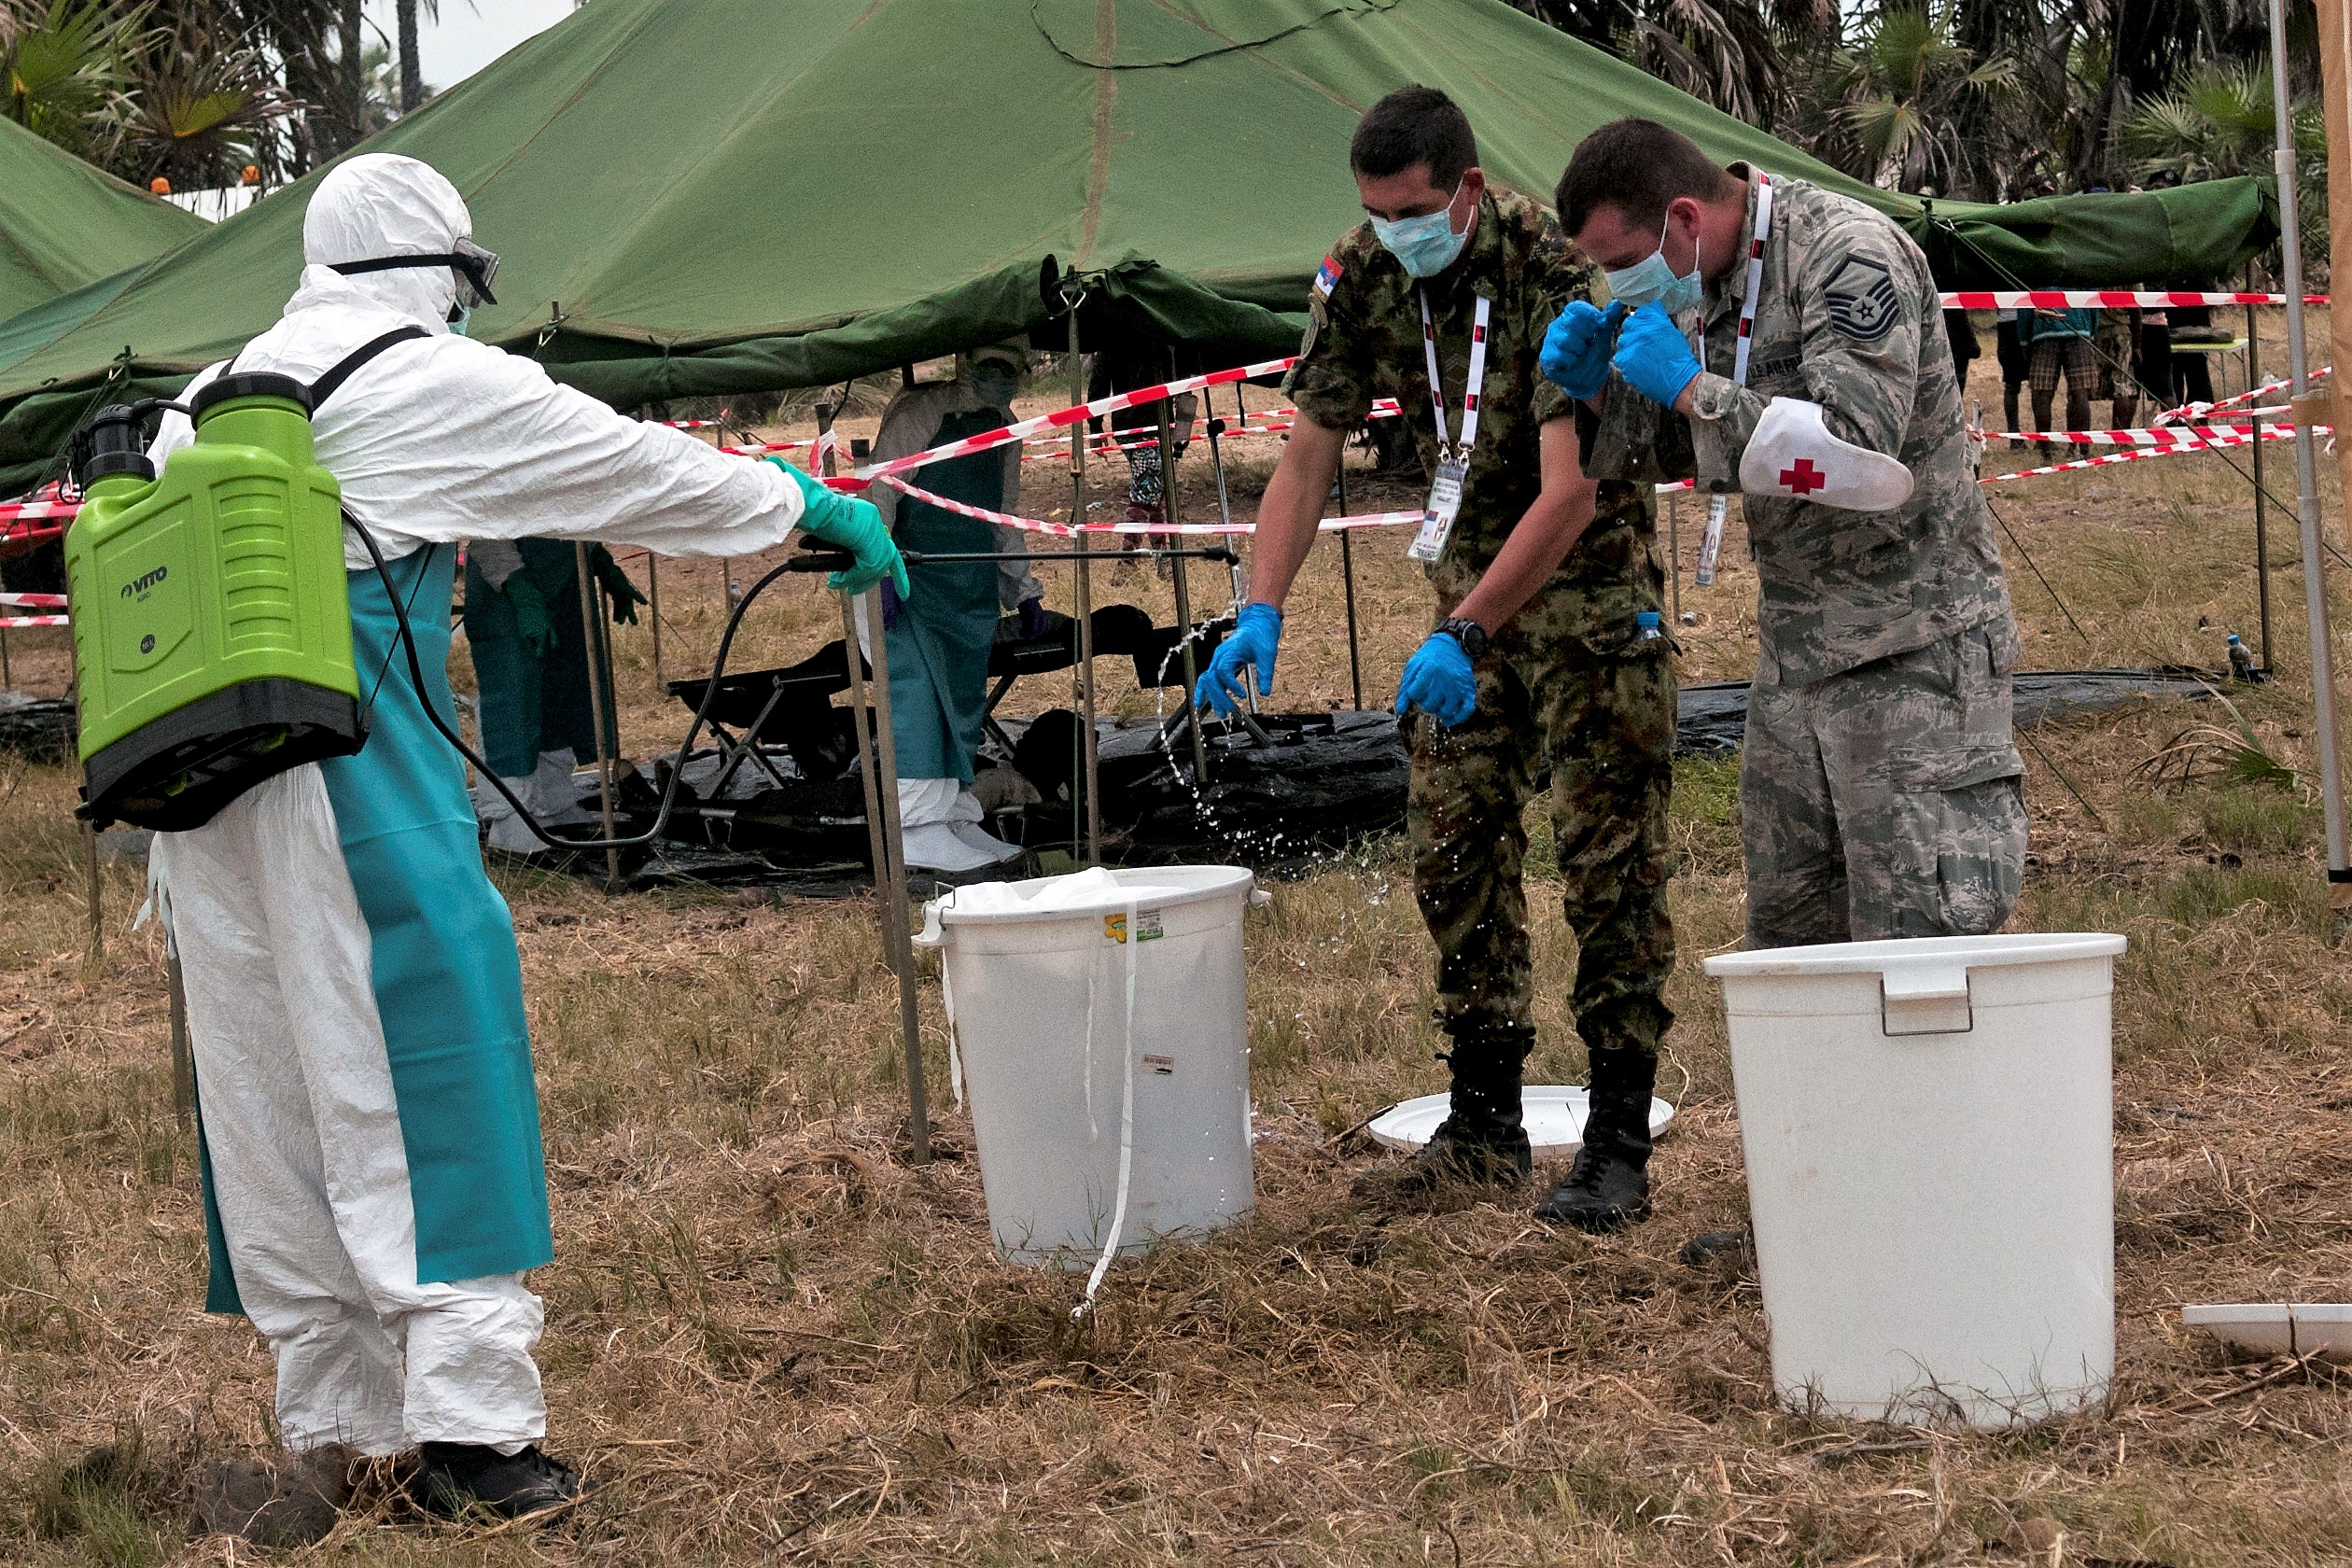 Master Sgt. Christopher Ice (right) of the Ohio Air National Guard and a member of the Serbian Armed Forces (center) take part in a demonstration of a simulated epidemic infectious disease outbreak during the VIP day and closing ceremony for PAMBALA 2017, Dec. 14, 2017, in Bengo Province, Angola. Highlights of the event included a demonstration of an infectious disease crisis response by the Angolan police and firefighting units, the Angolan Armed Forces and some of the Serbian and Ohio National Guard personnel. (Ohio National Guard photo by Staff Sgt. Wendy Kuhn)